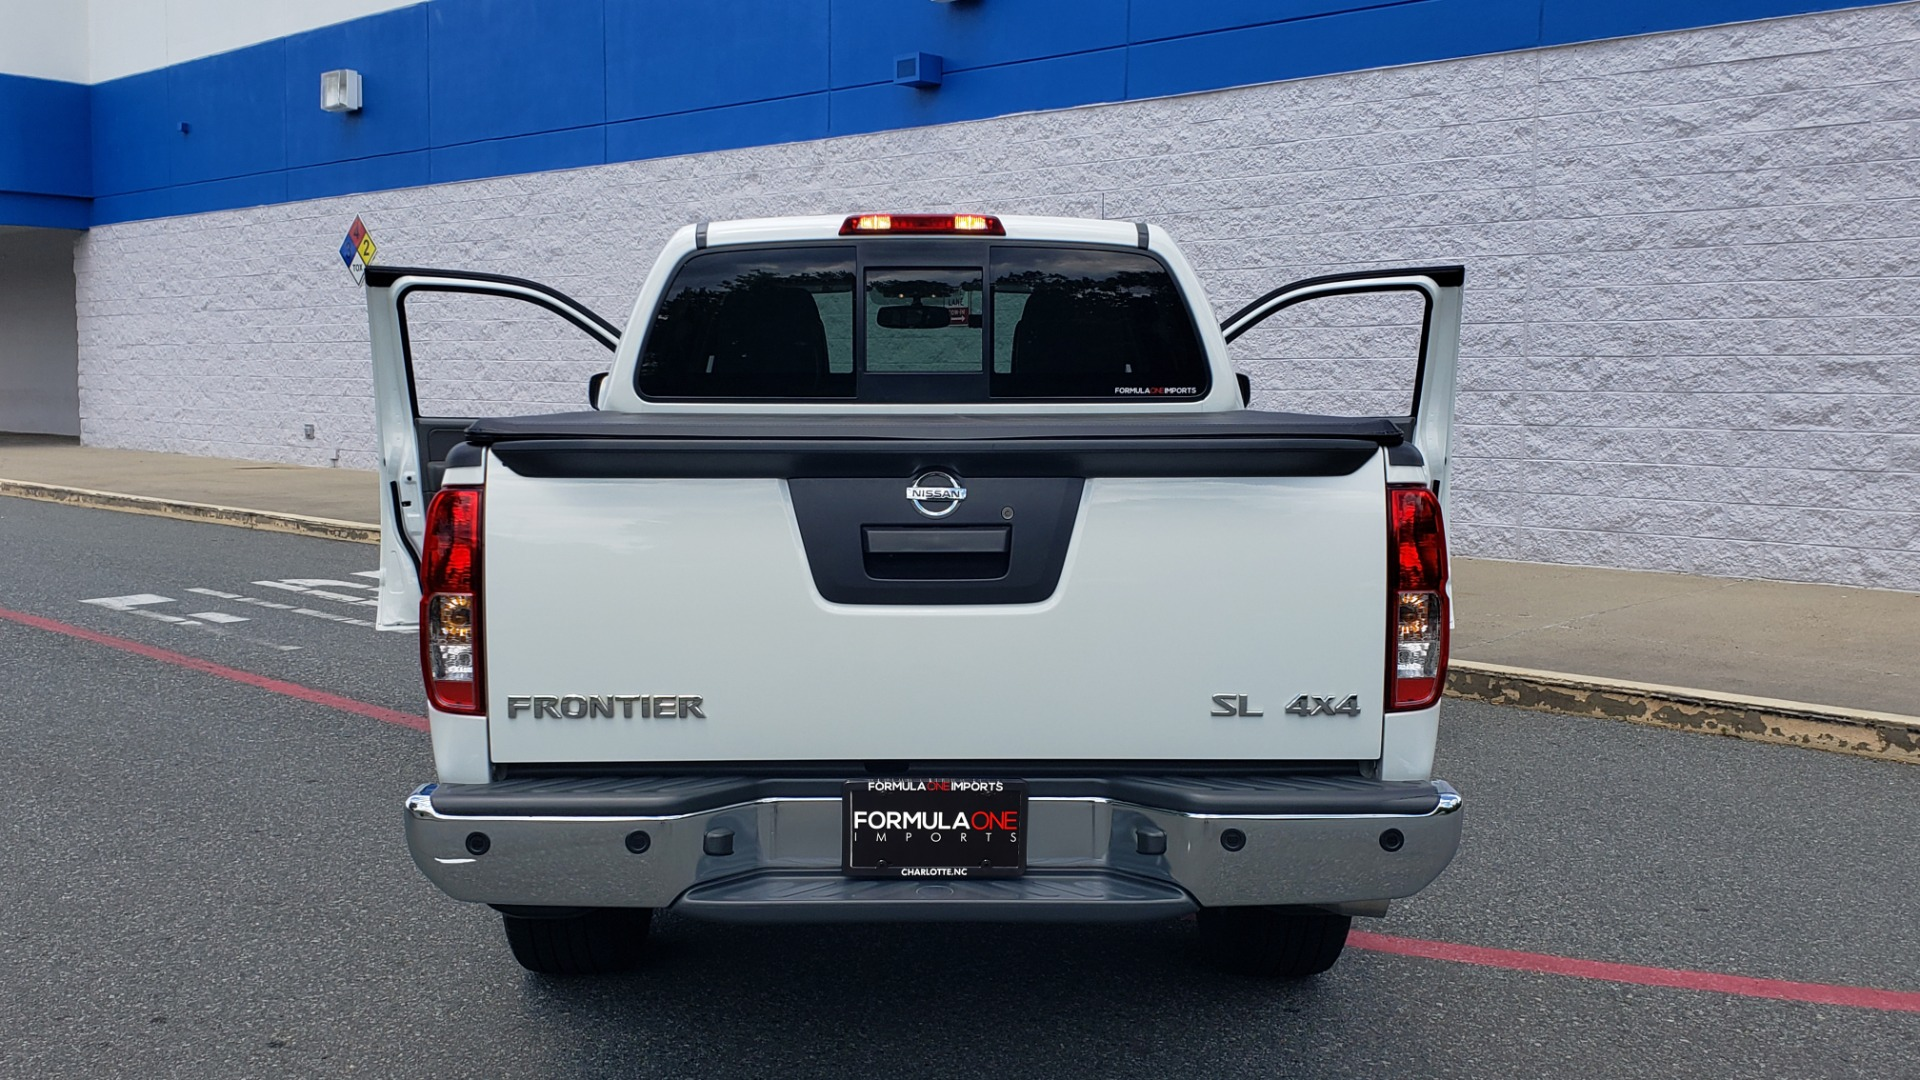 Used 2019 Nissan FRONTIER SL CREW CAB / 4X4 / NAV / SUNROOF / ROCKFORD FOSGATE / LOADED for sale $31,495 at Formula Imports in Charlotte NC 28227 28